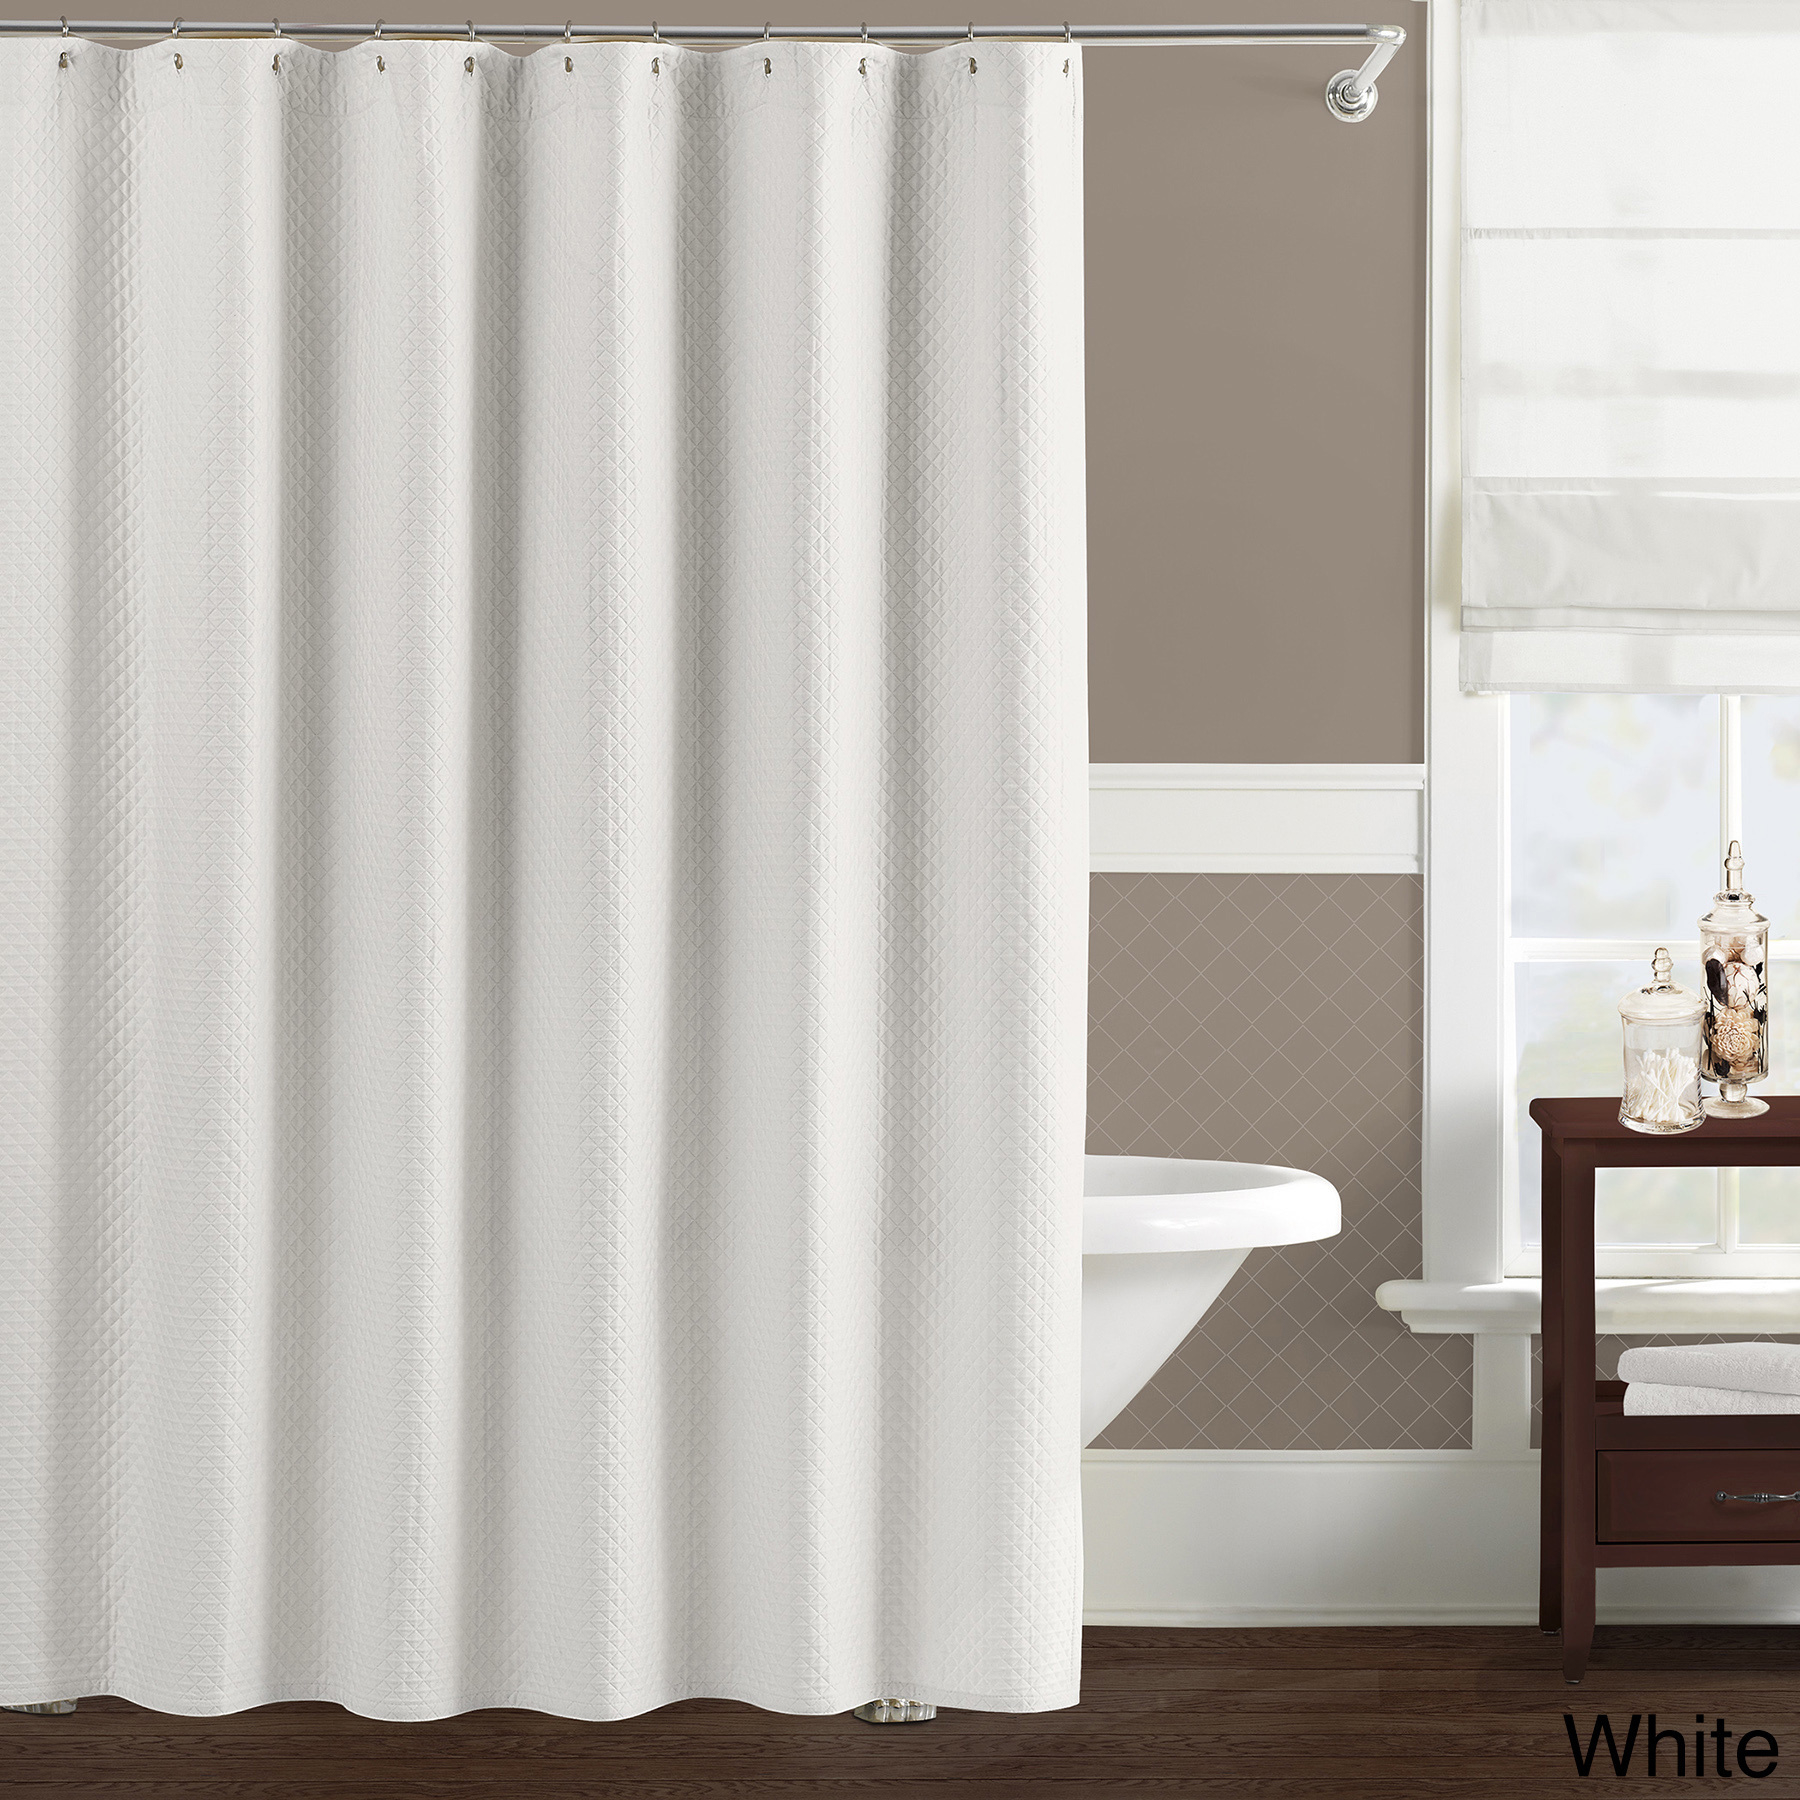 Luxury Shower Curtain With Minimalist Luxury Cotton Shower within sizing 1800 X 1800